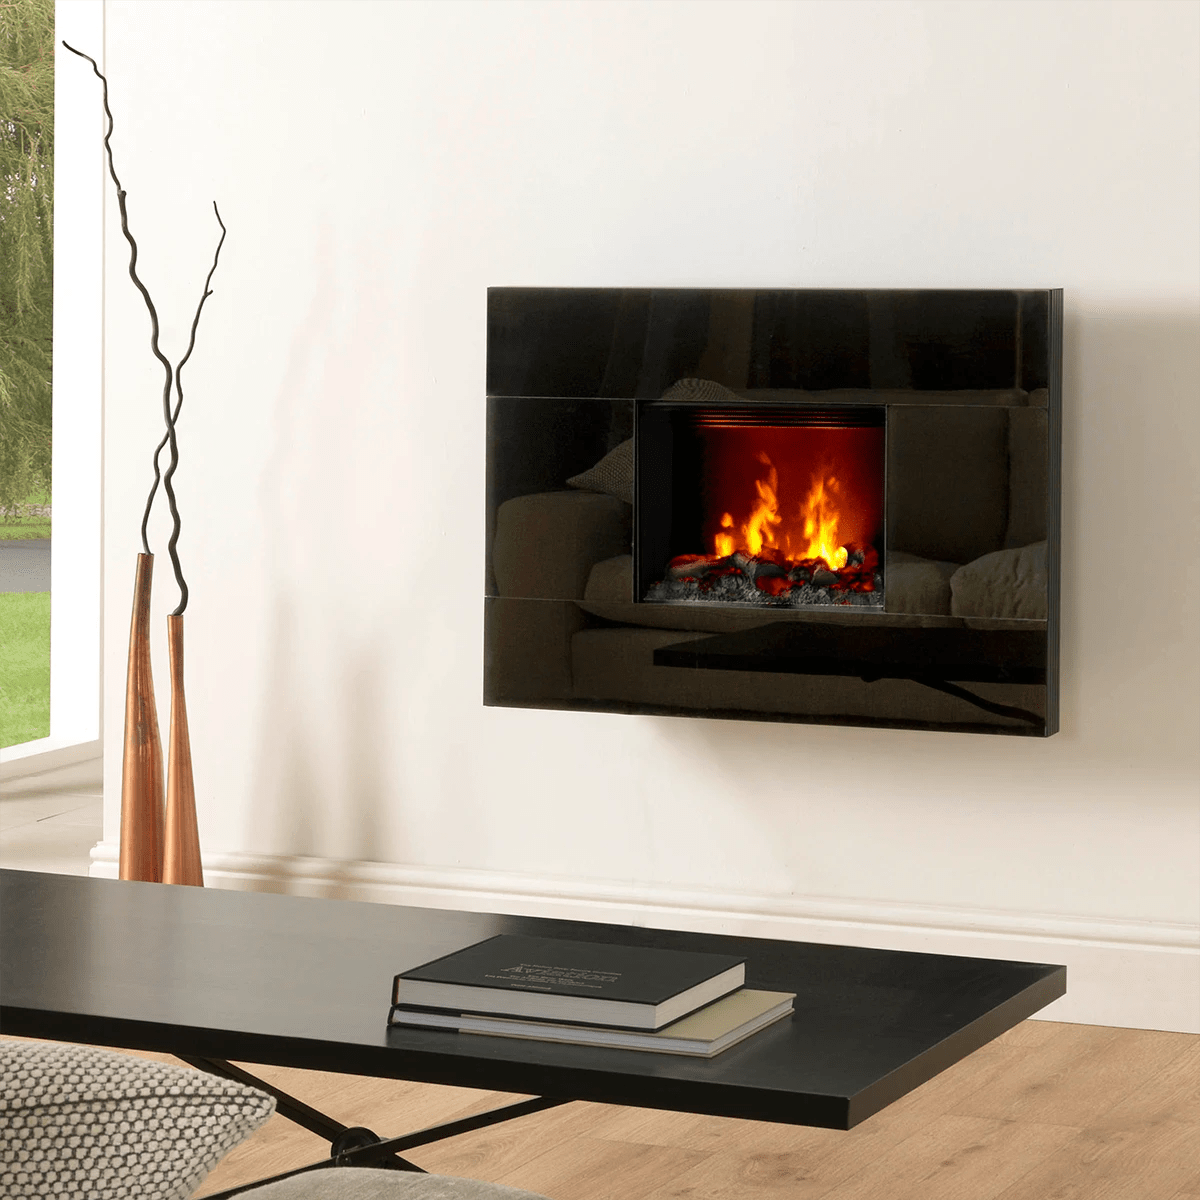 Wall Mount Fireplaces Dimplex Tahoe Opti Myst Wall Mountelectric Fireplace Tah20r